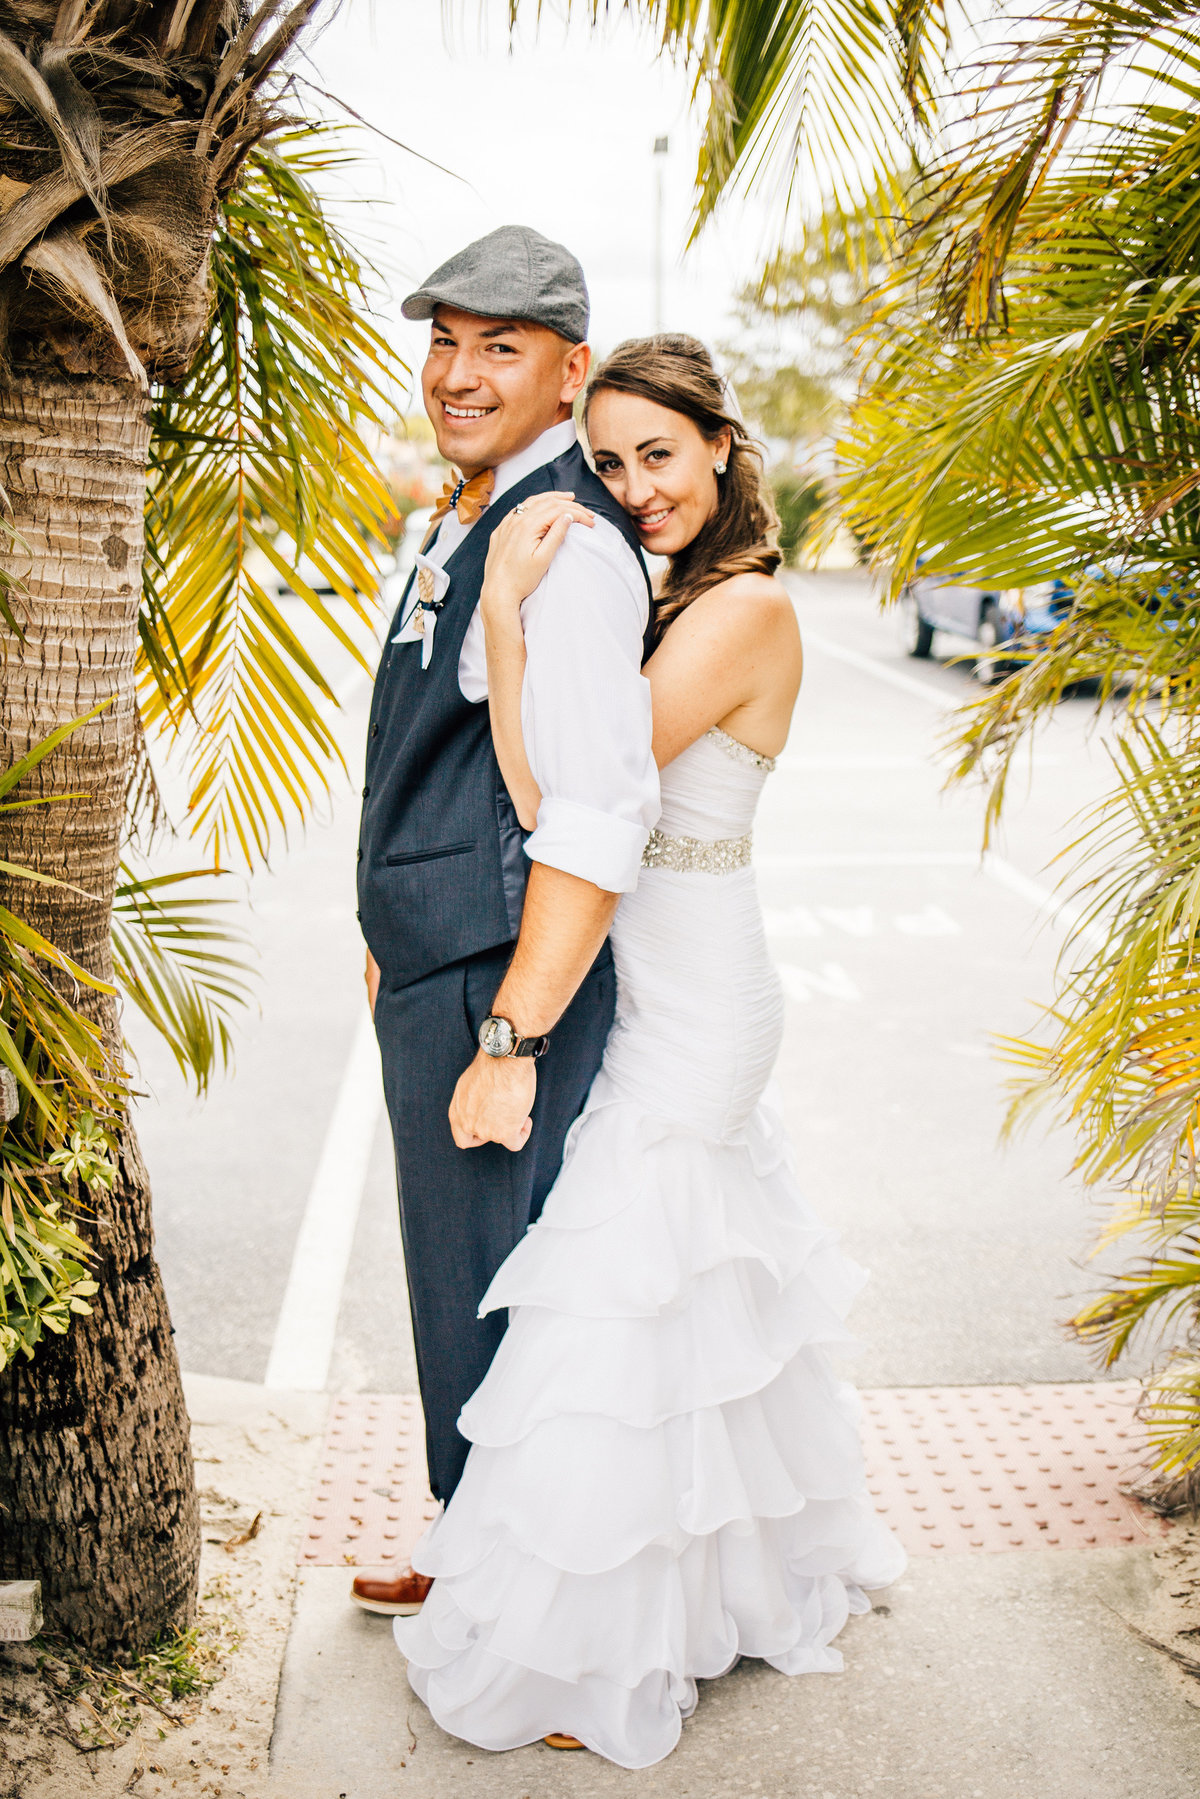 Kimberly_Hoyle_Photography_Marrero_Millikens_Reef_Wedding-69